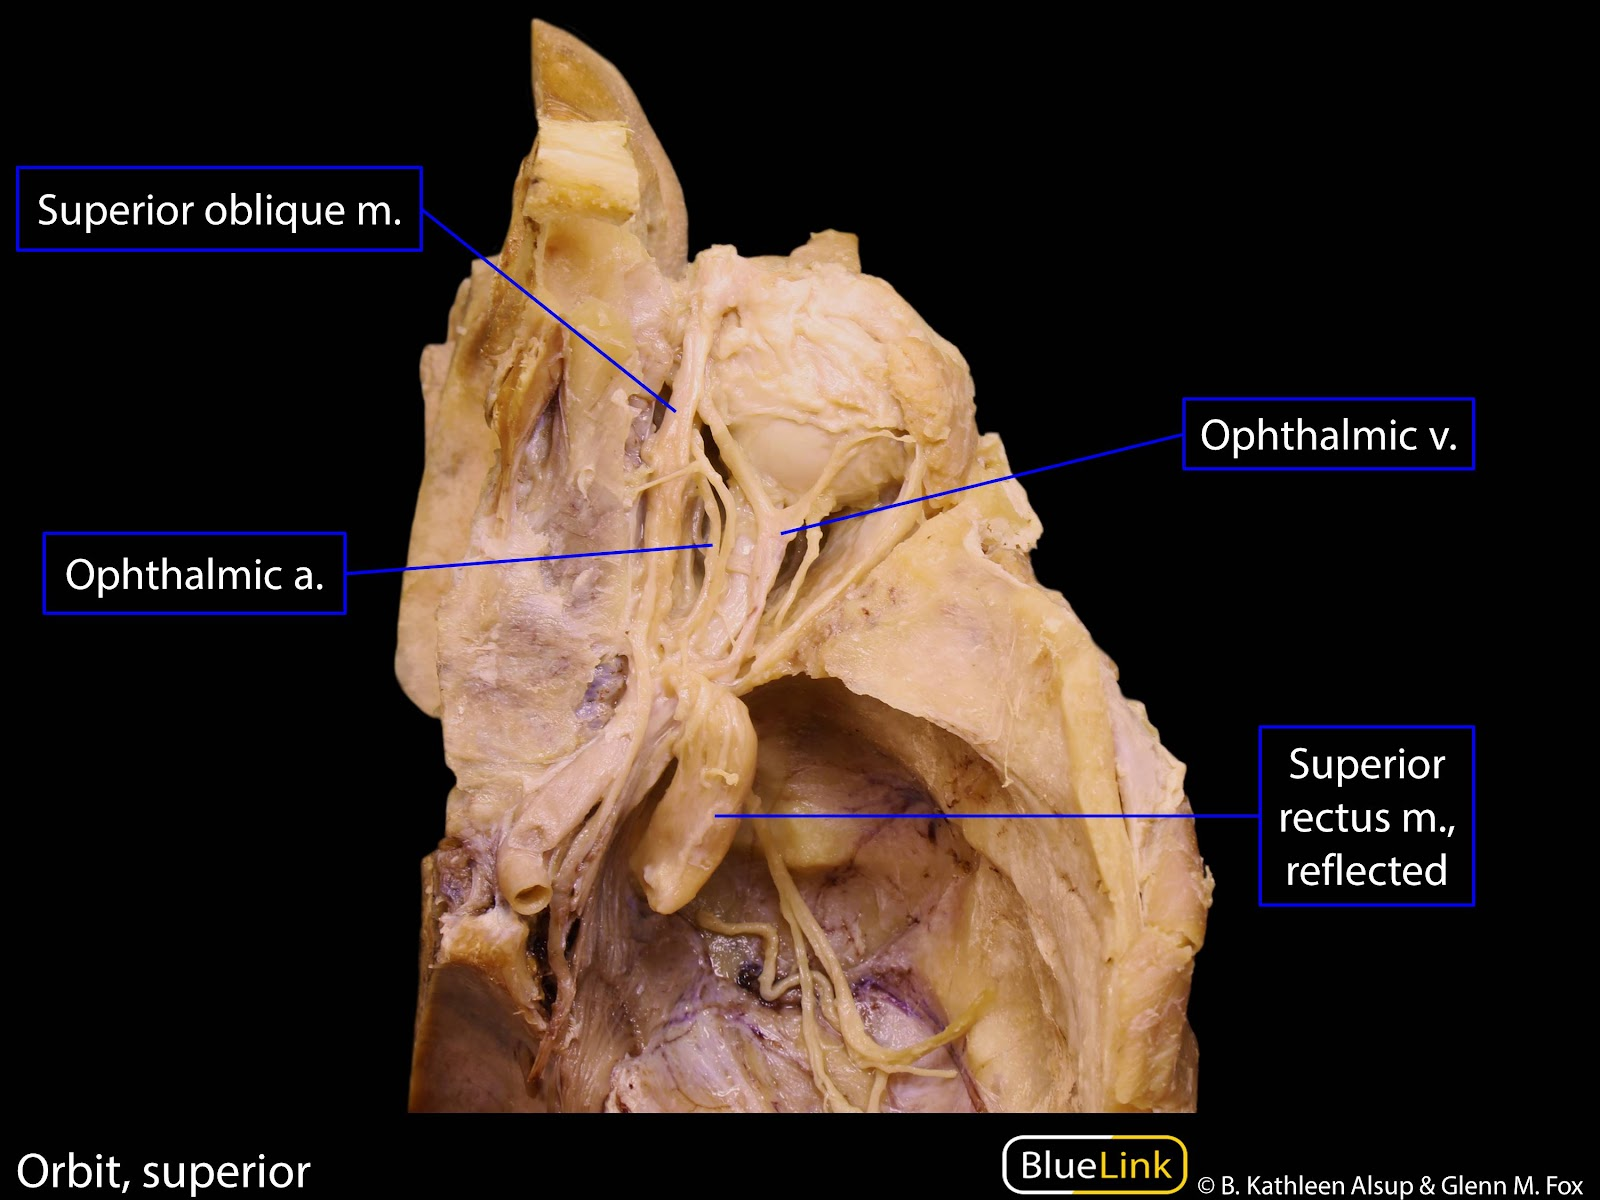 S10 Orbit and Cavernous Sinus - Learning Objectives - BlueLink